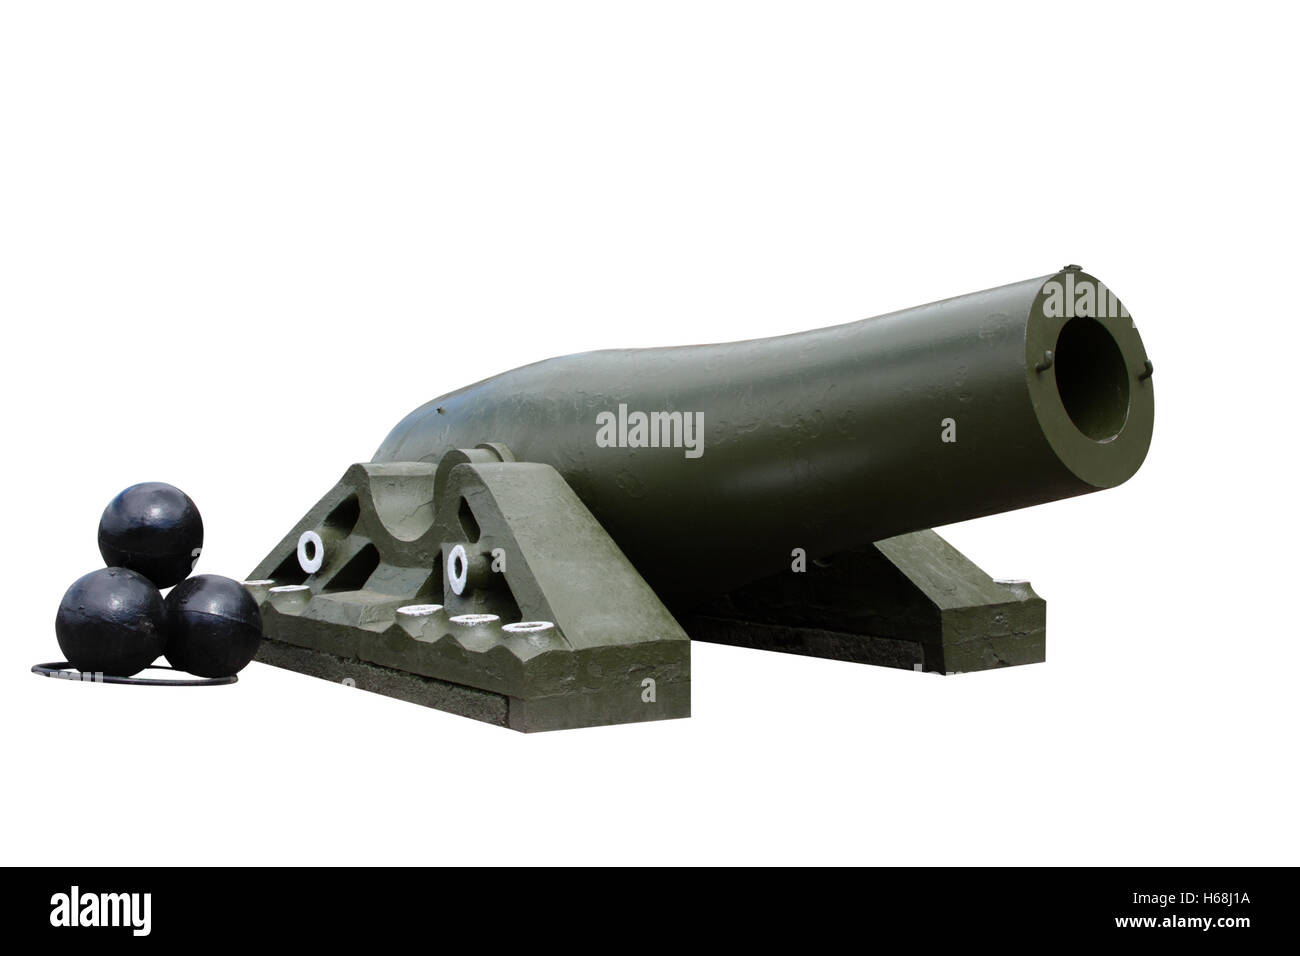 20 inch pig-iron ship guns - Stock Image